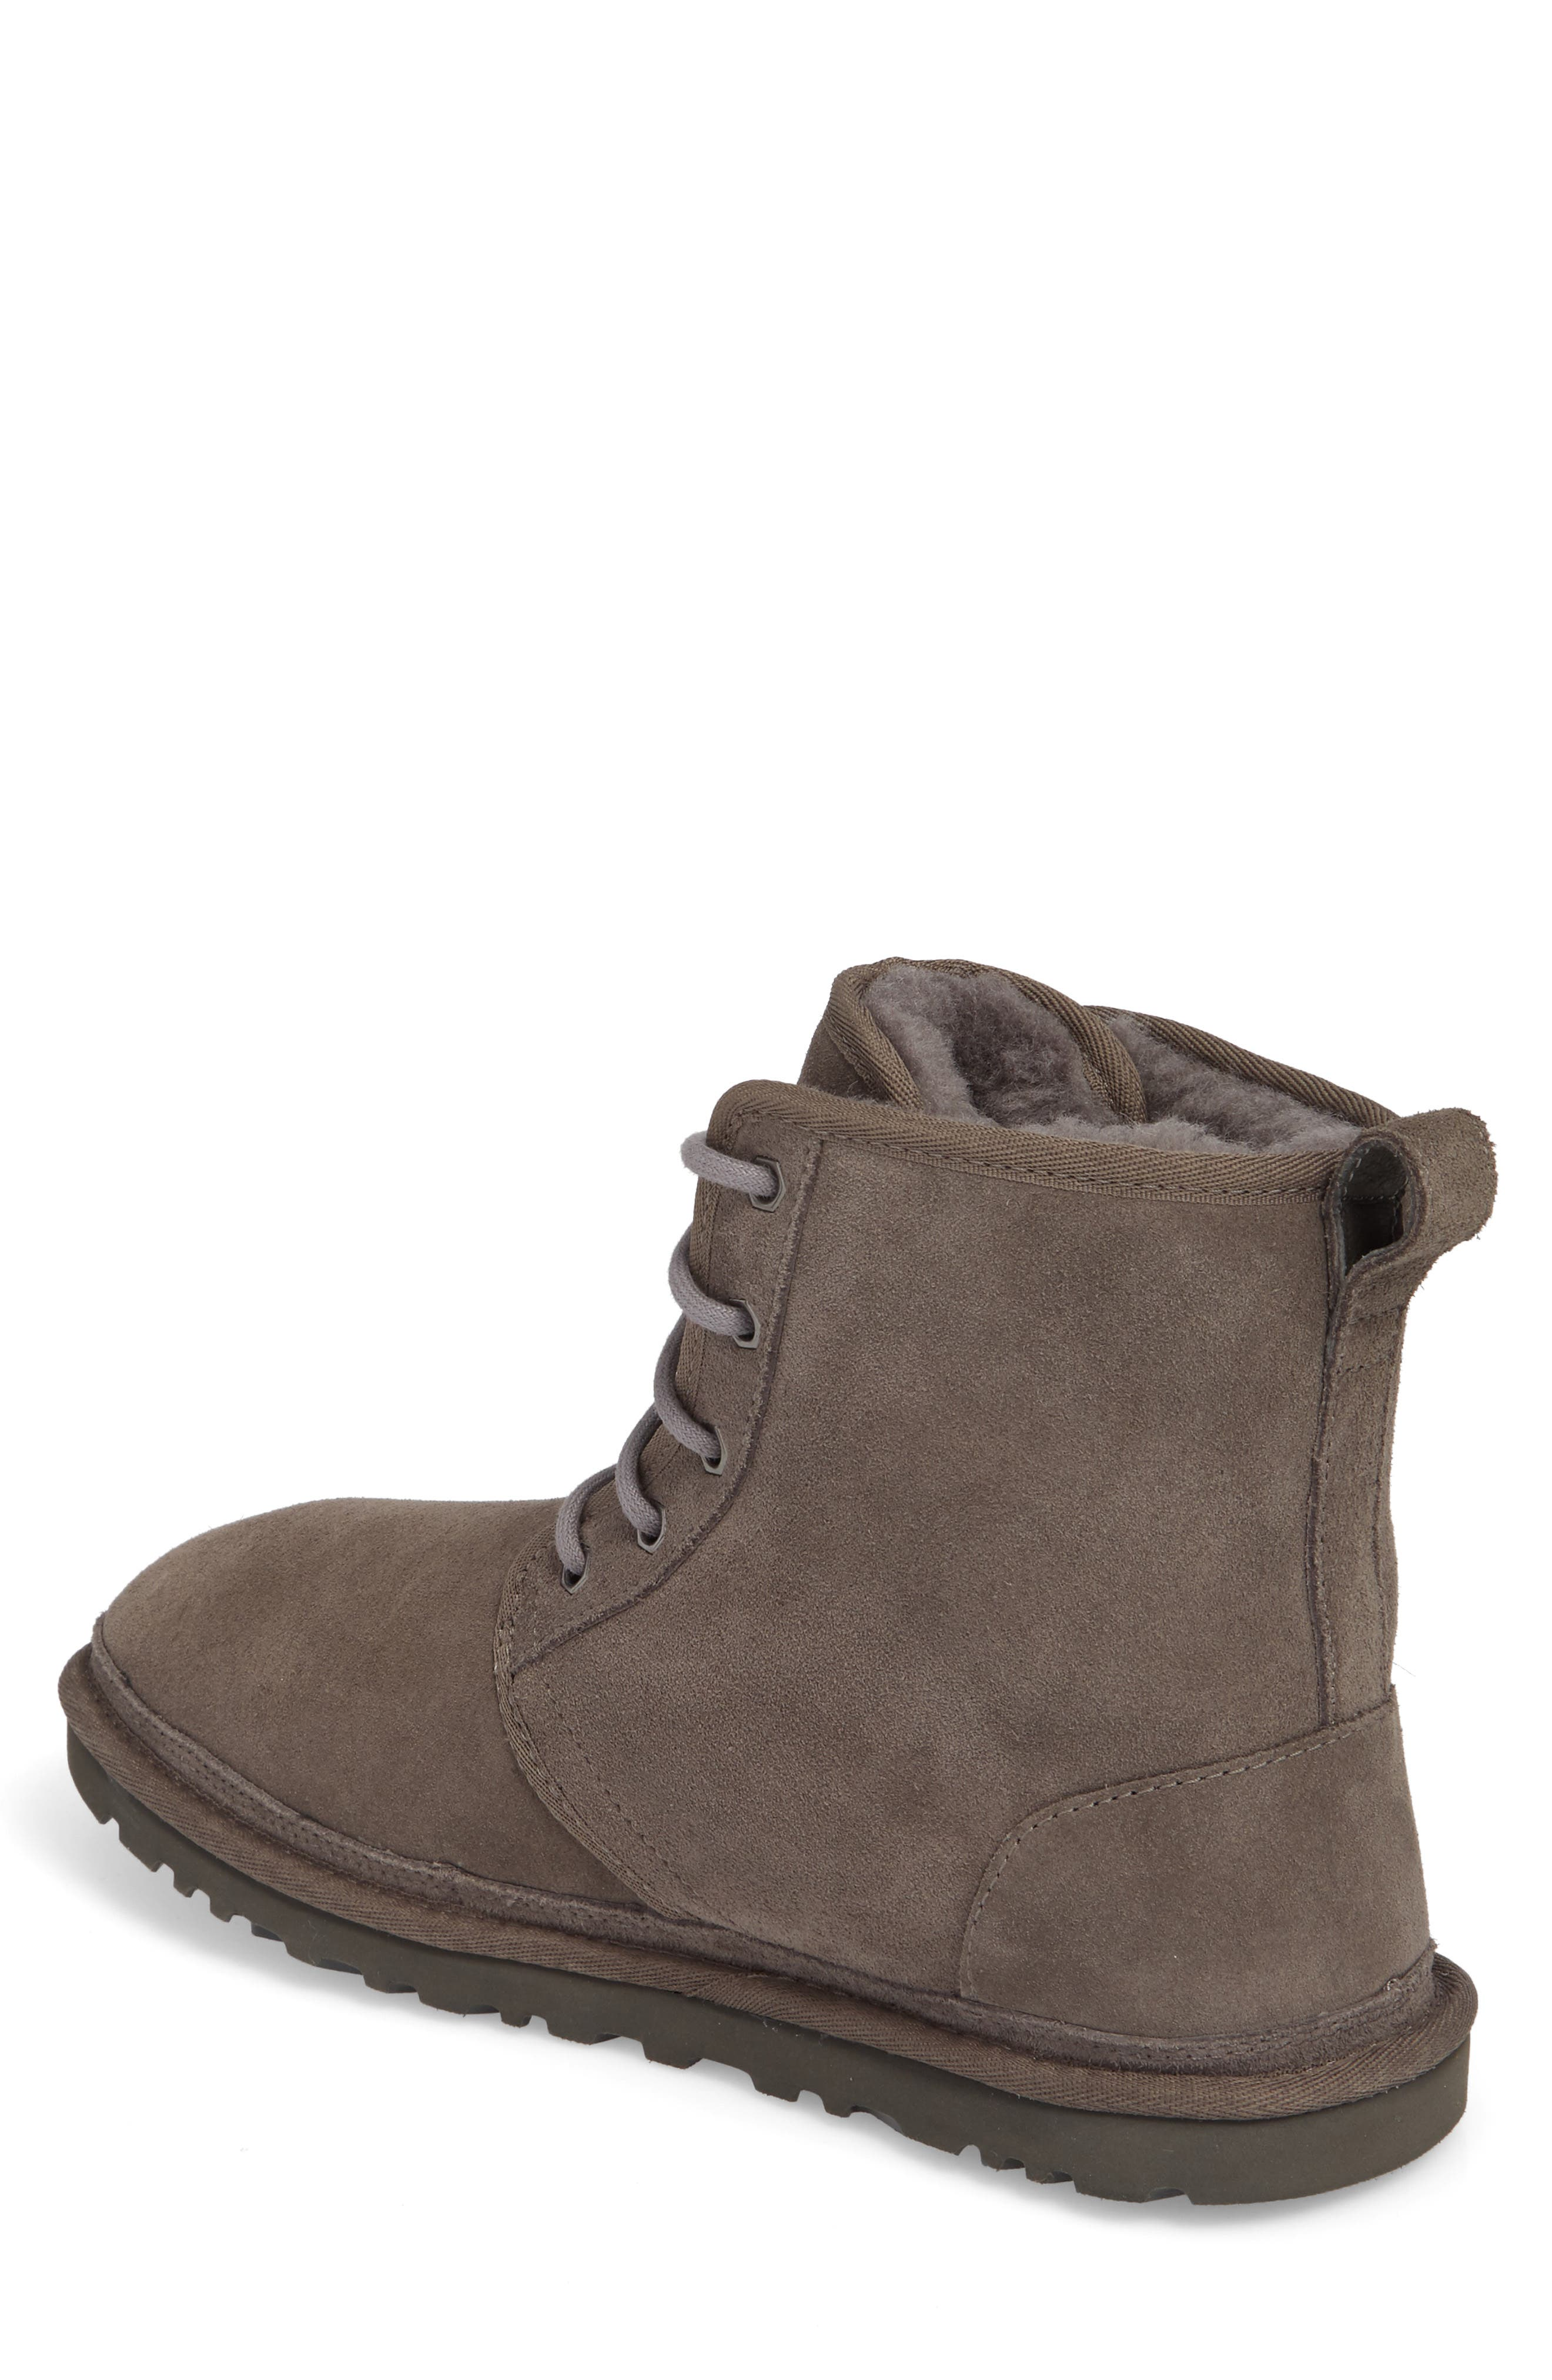 Harkley Lace-Up Boot,                             Alternate thumbnail 2, color,                             CHARCOAL SUEDE